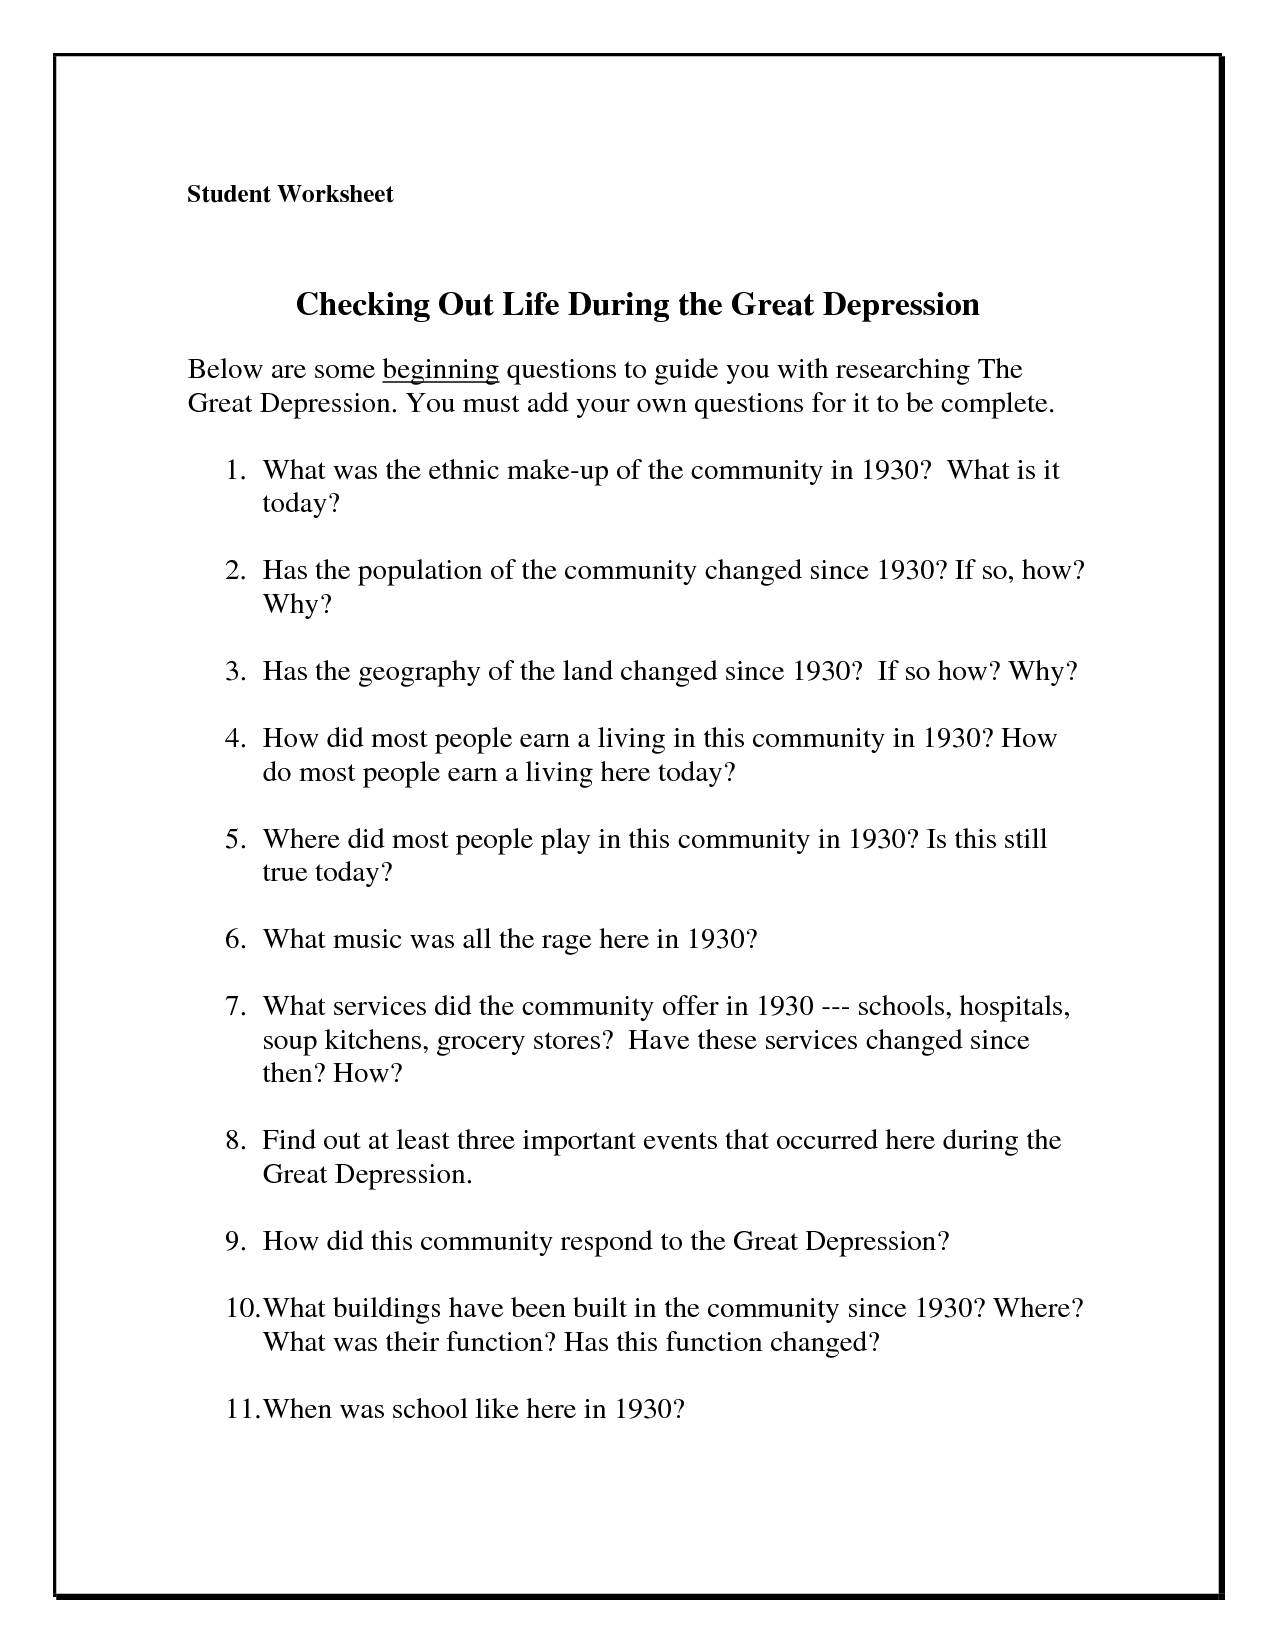 14 Best Images of Dealing With Depression Worksheets ...